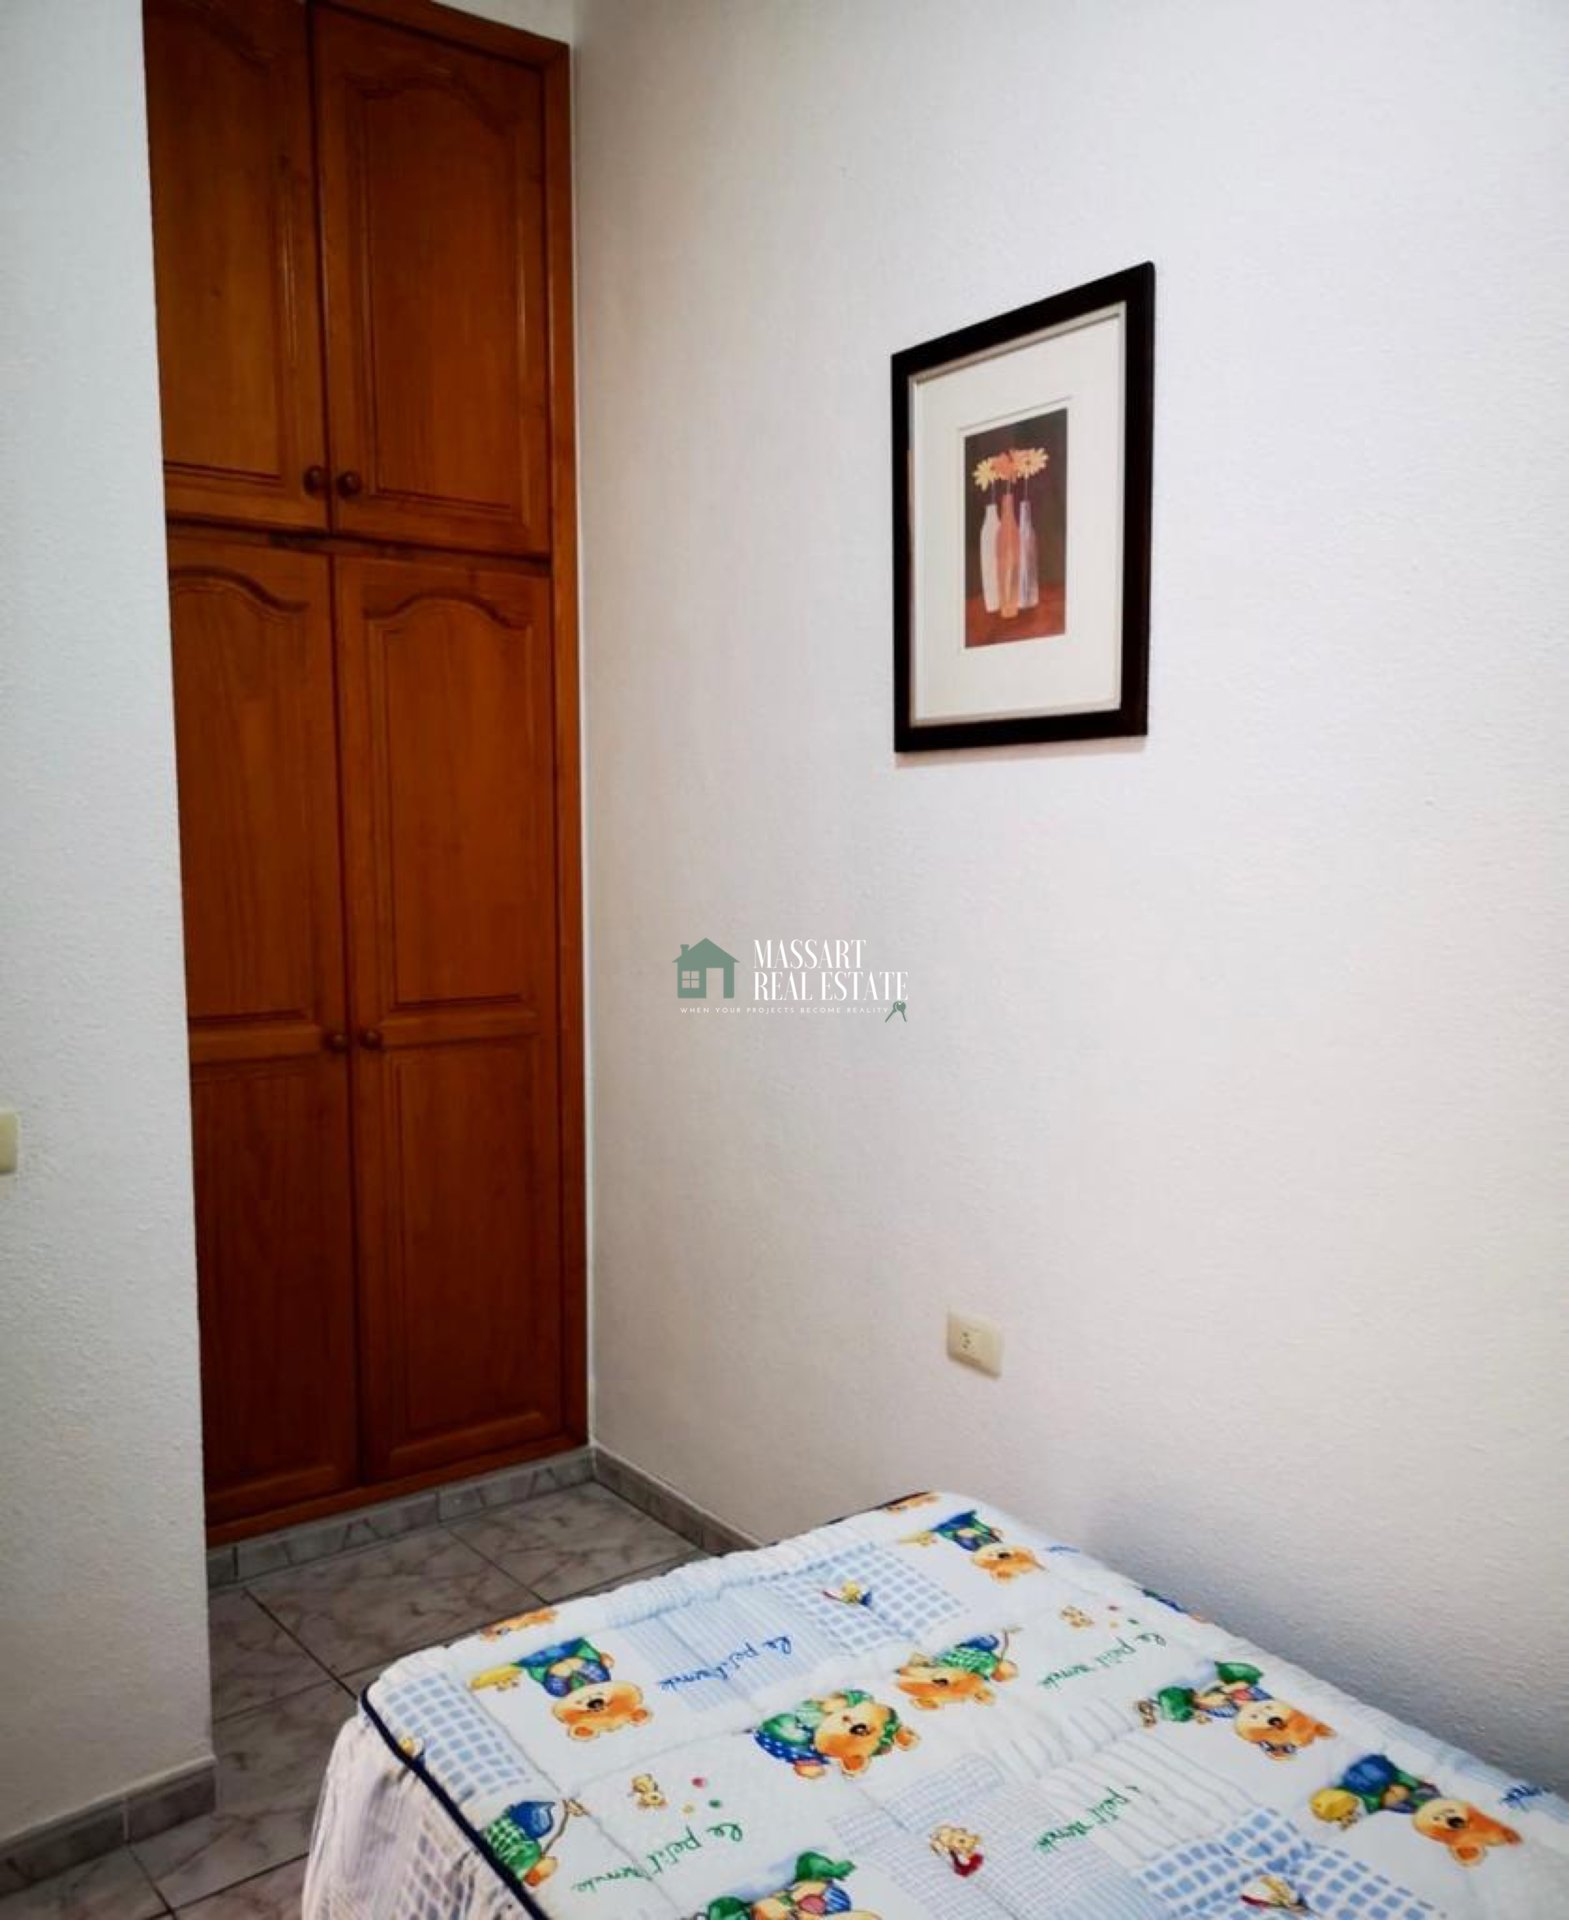 For rent in Los Menores, a fully furnished 70 m2 apartment located on the ground floor, in a central area of absolute tranquility.